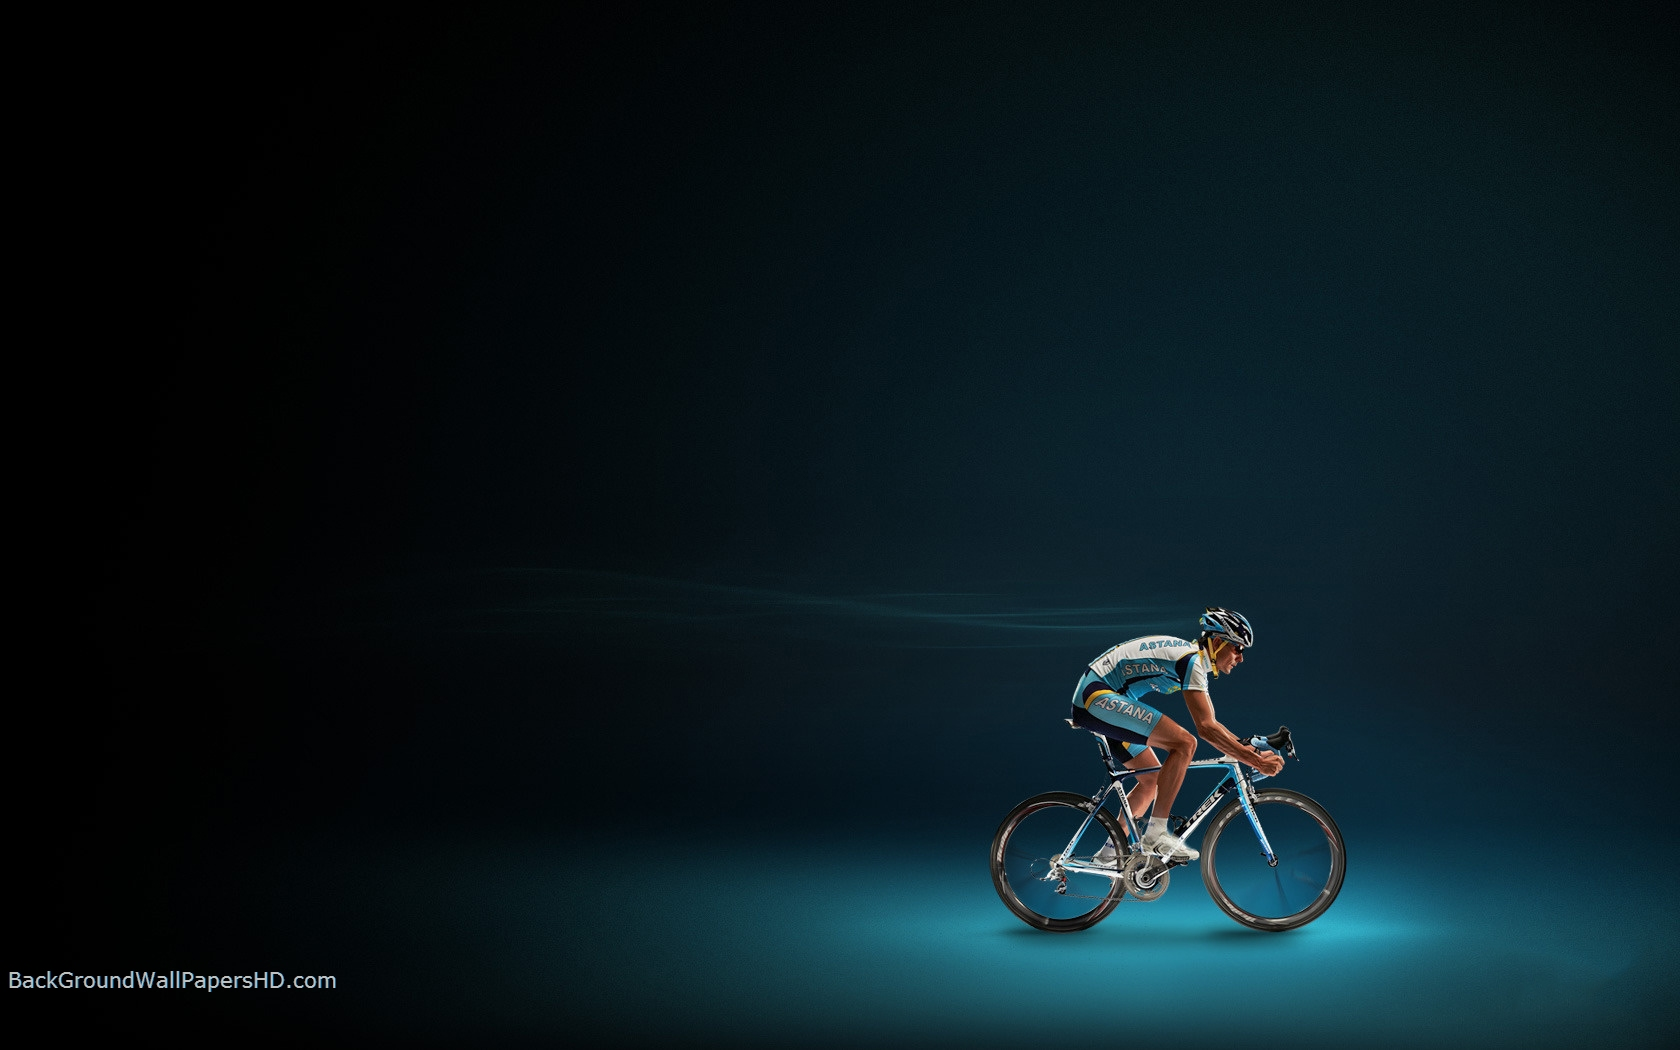 Cycling Sports Latest HD Wallpapers 05 Cycling Sports Latest HD Wallpapers